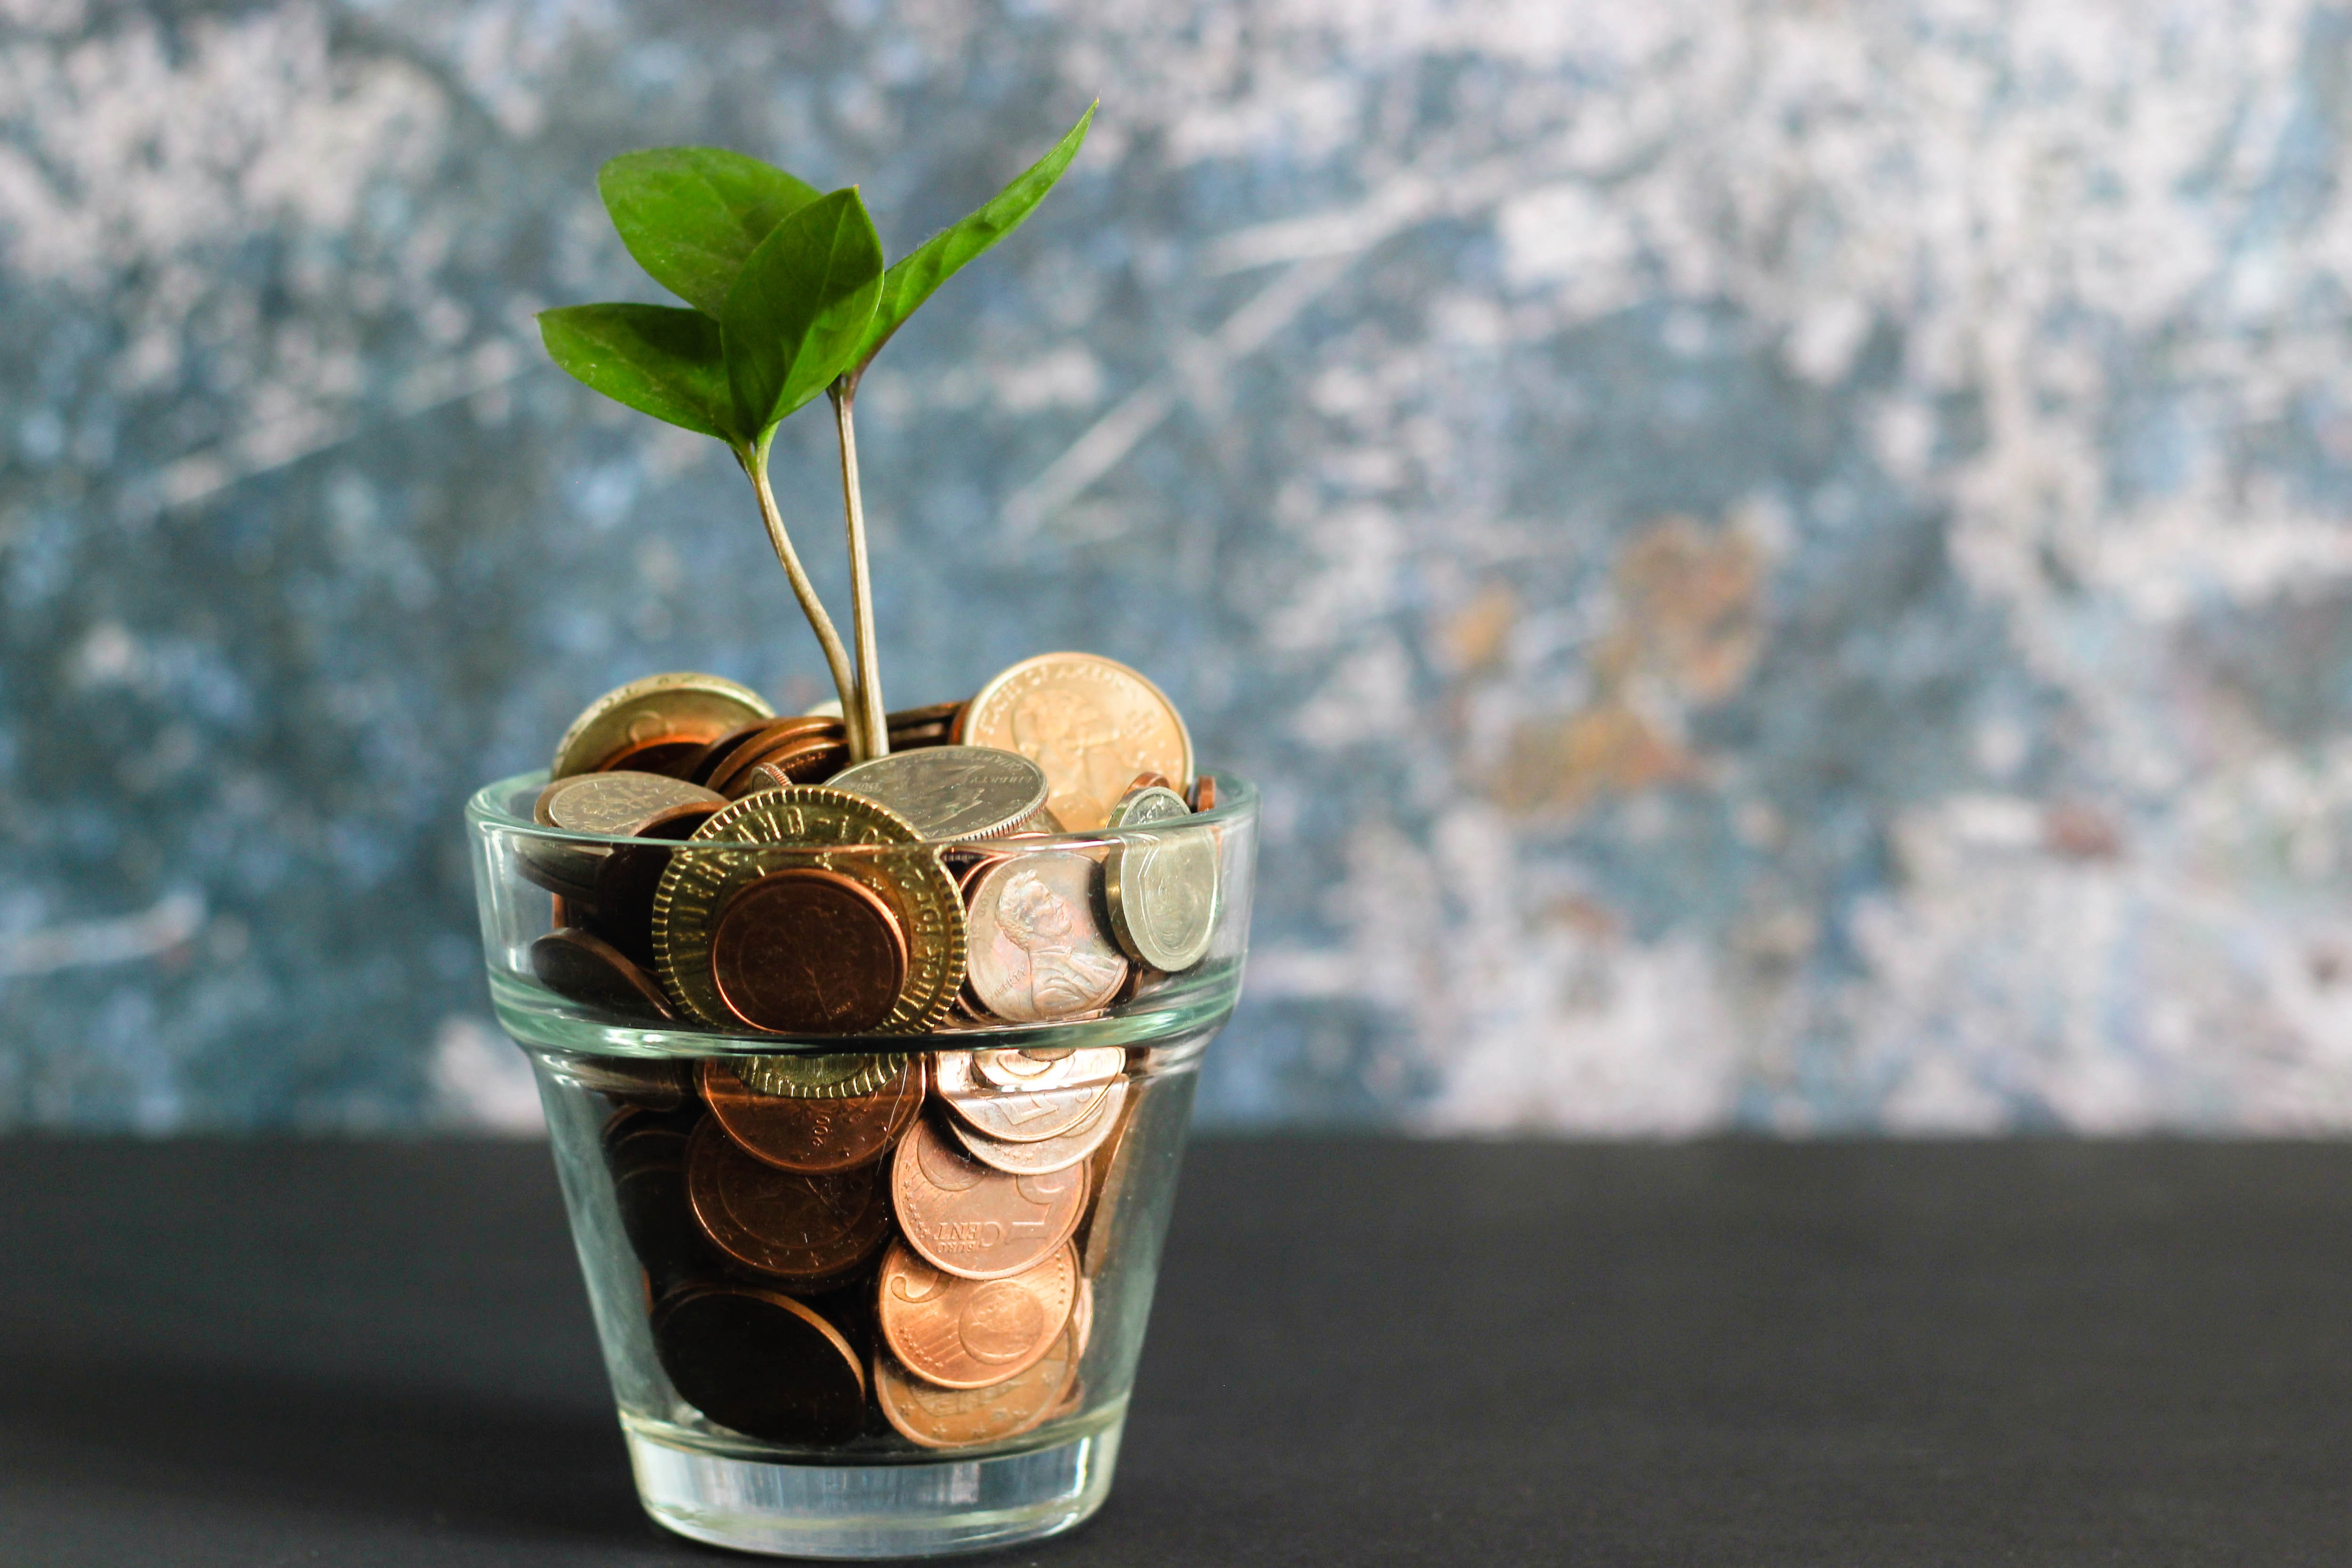 Transparent glass filled with bronze coins and a young plant growing out of it